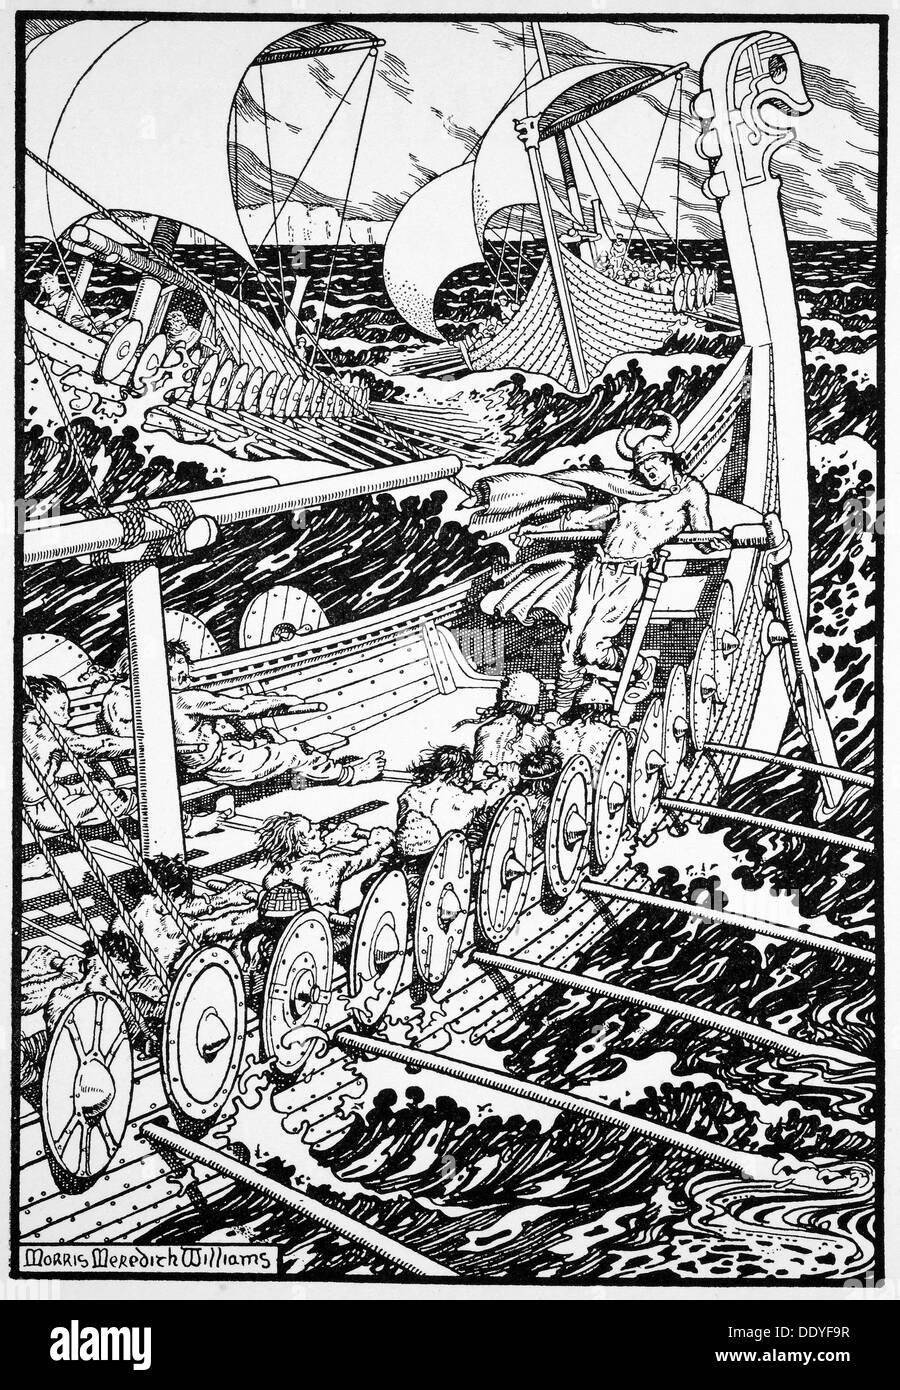 'The Coming of the Northmen', 1913.   Artist: Morris Meredith Williams - Stock Image